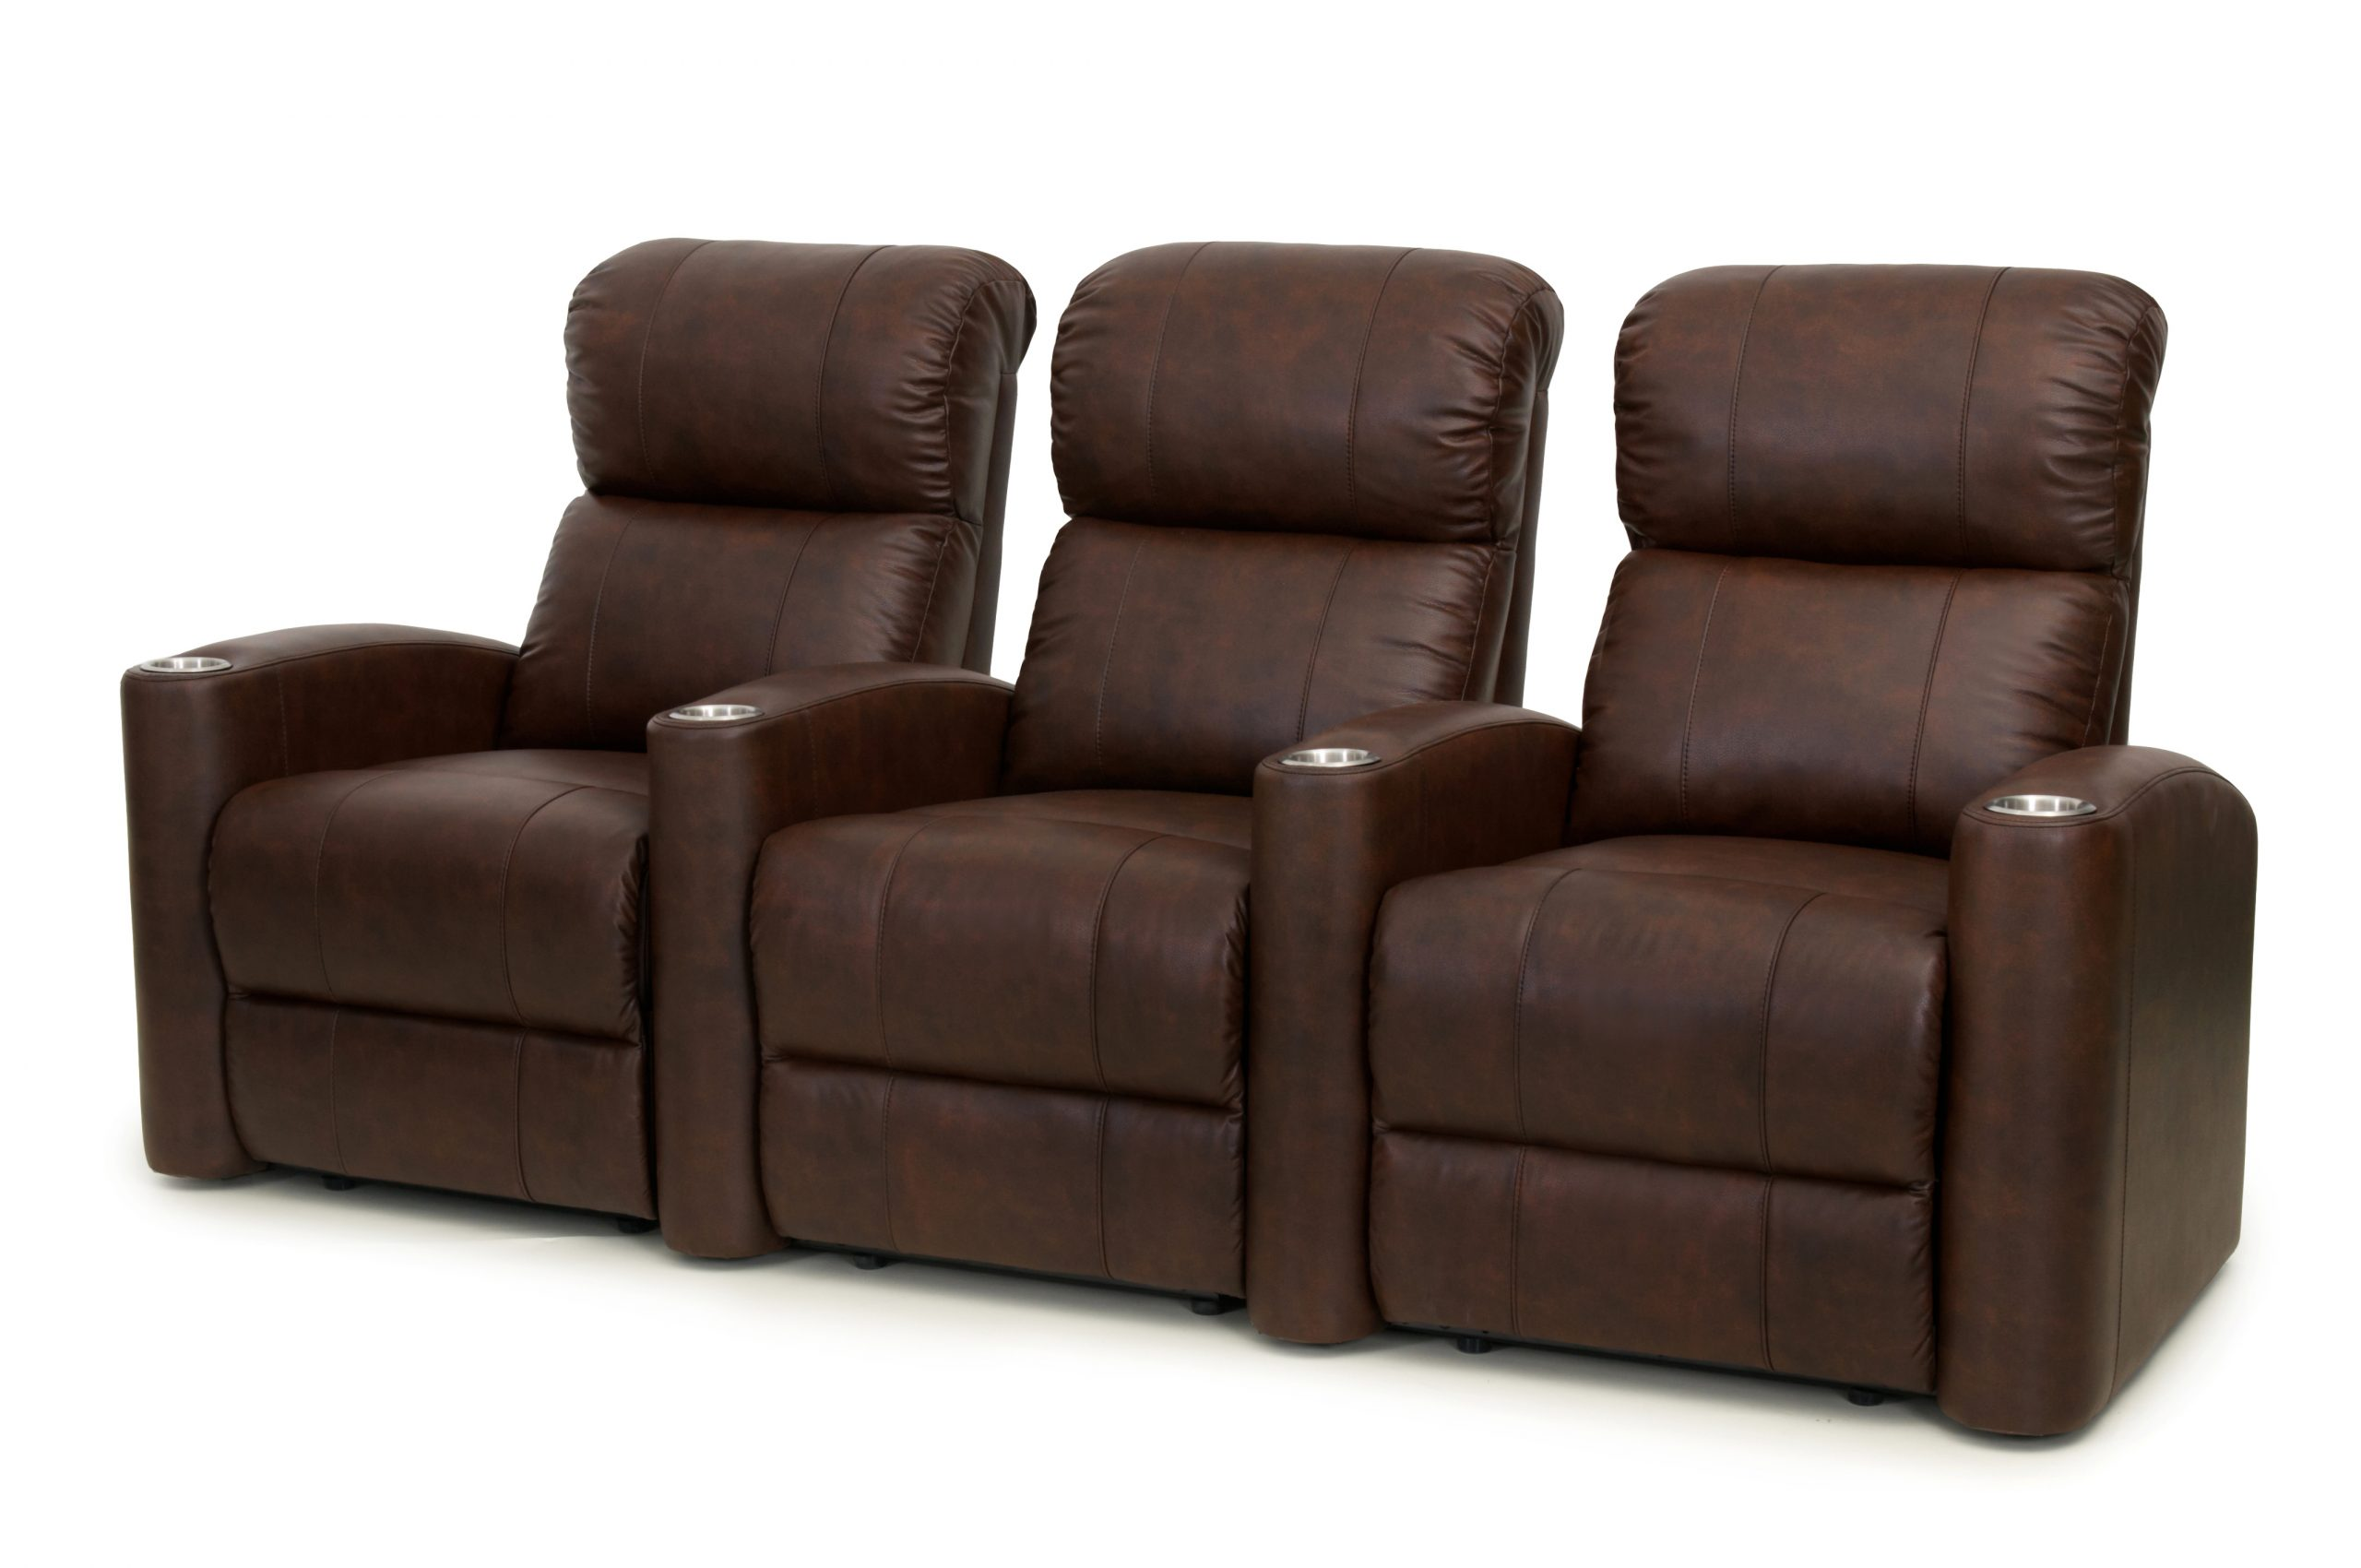 Straight set of 3 Fusion Collection Encore-1010 manual recliners in chocolate brown leather gel